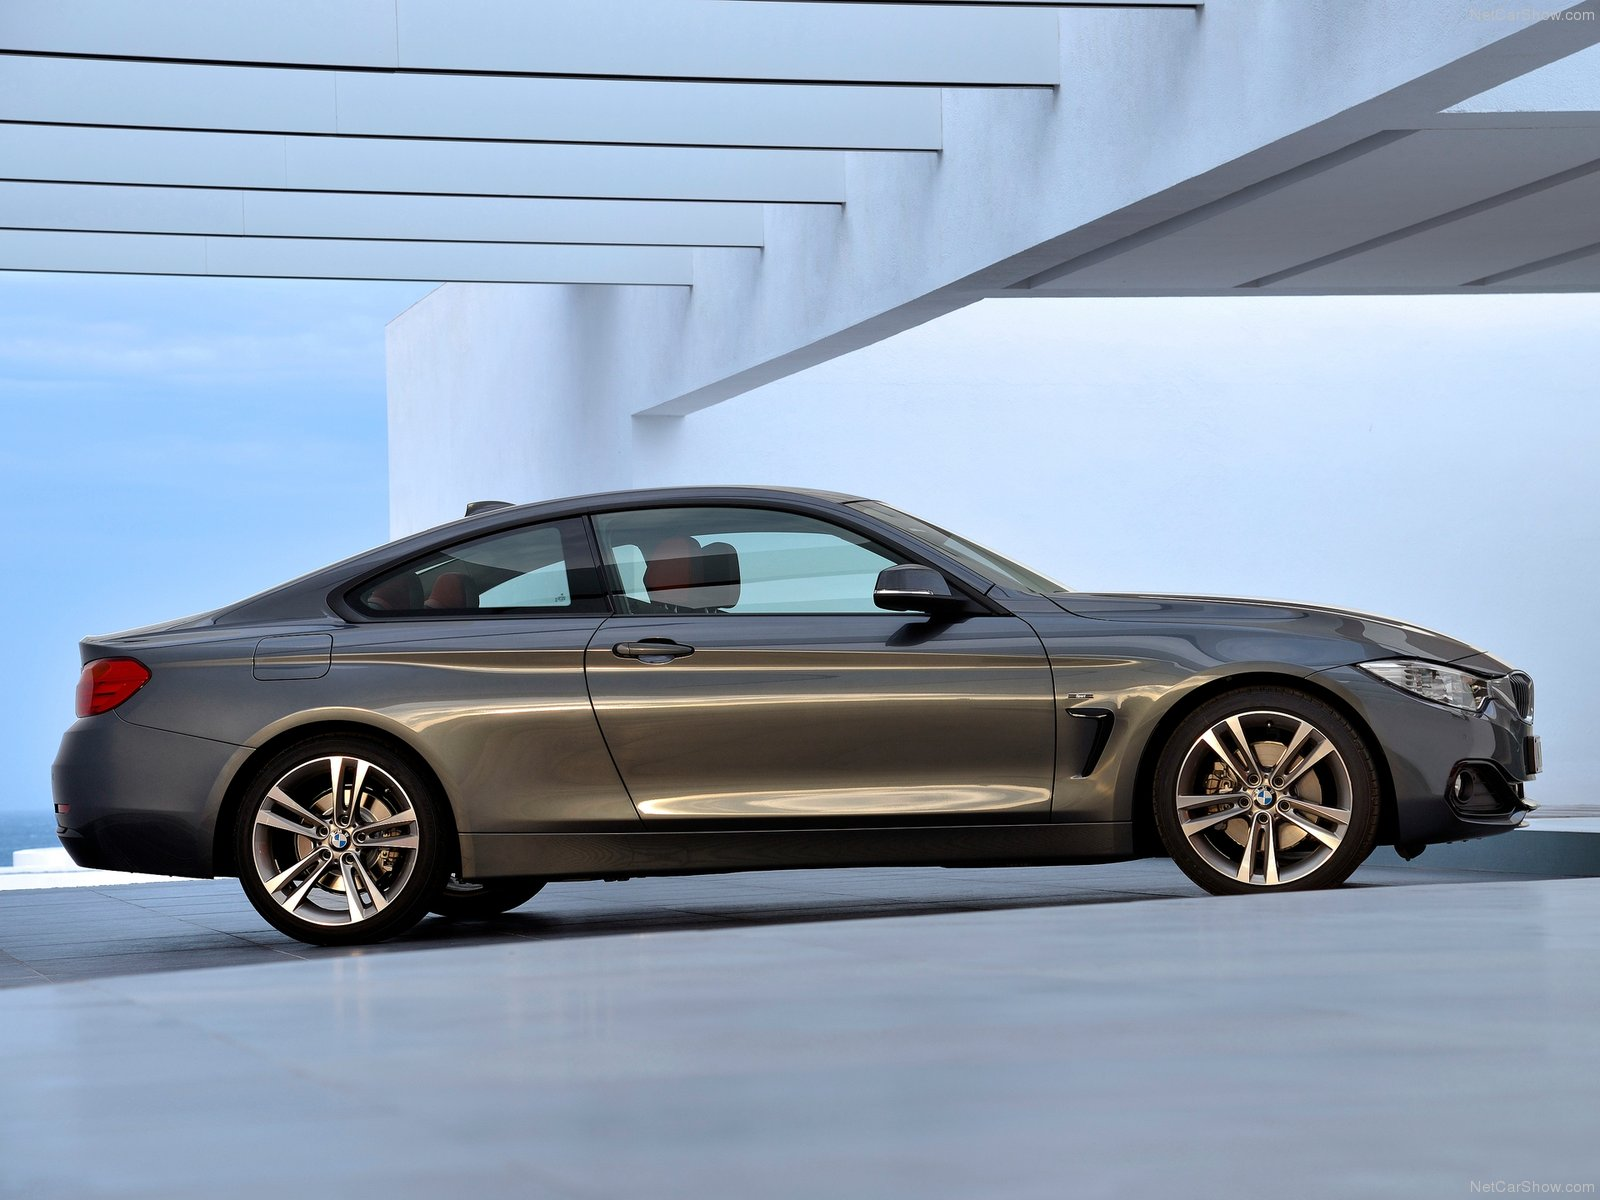 BMW 4 series Coupe 2114